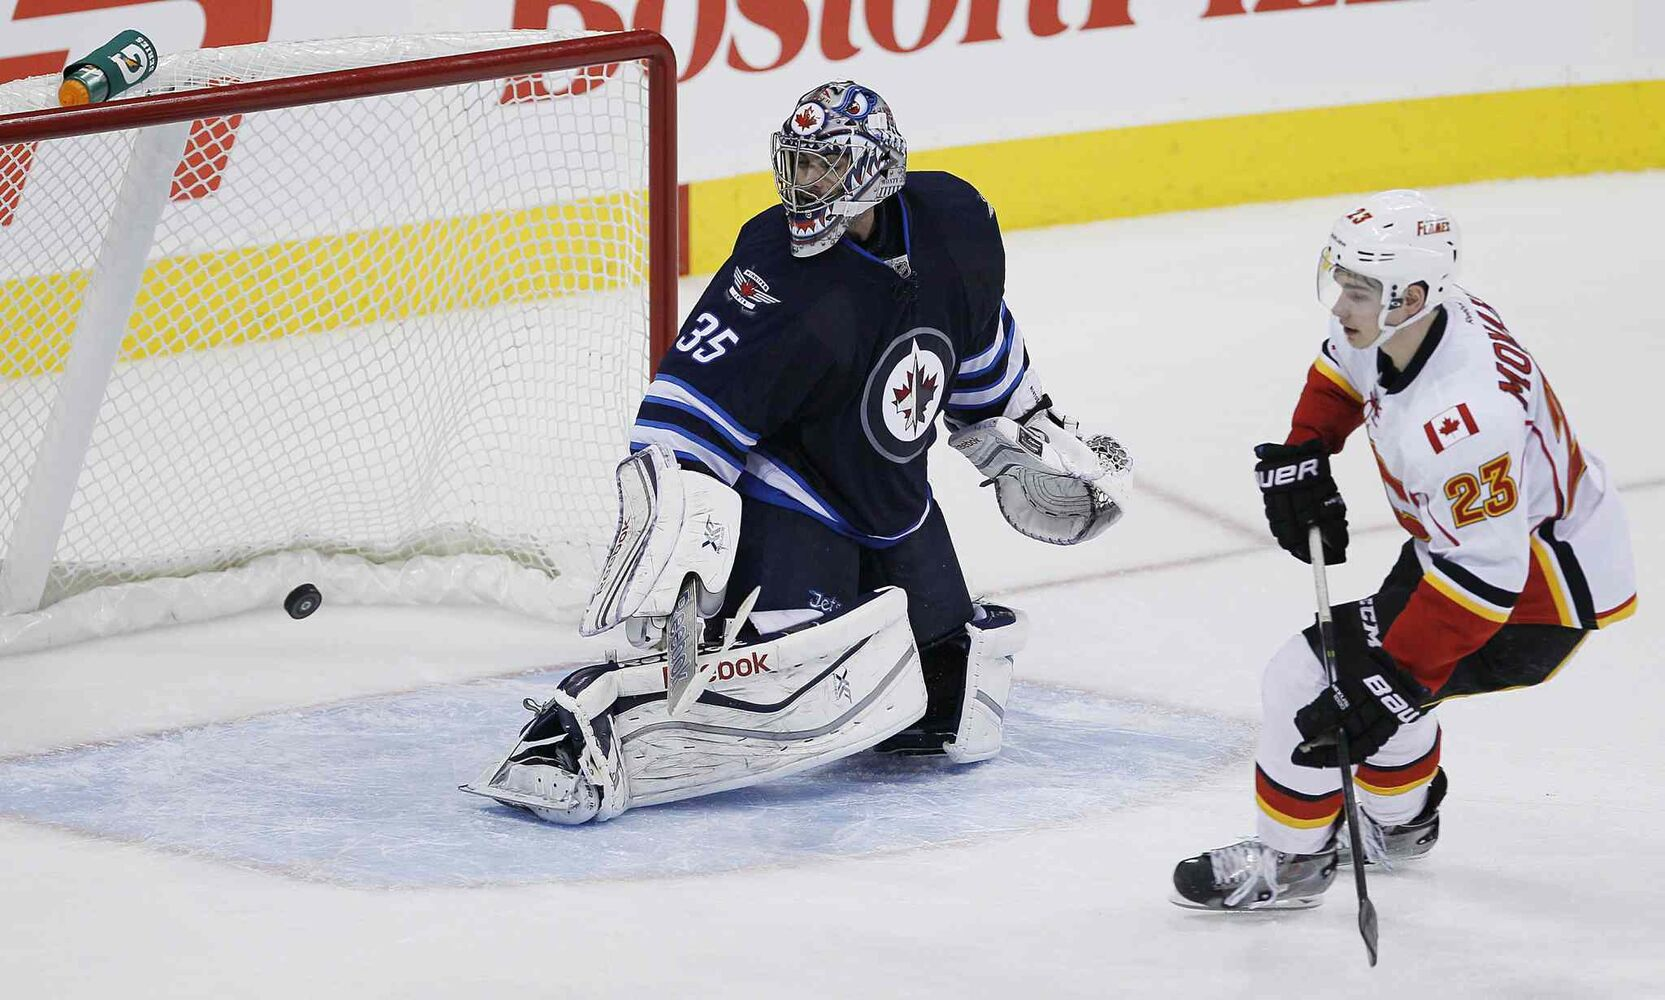 Calgary Flames' Sean Monahan (23) scores on Winnipeg Jets' goaltender Al Montoya (35) in the shootout to win in NHL action in Winnipeg on Monday, Nov. 18, 2013.